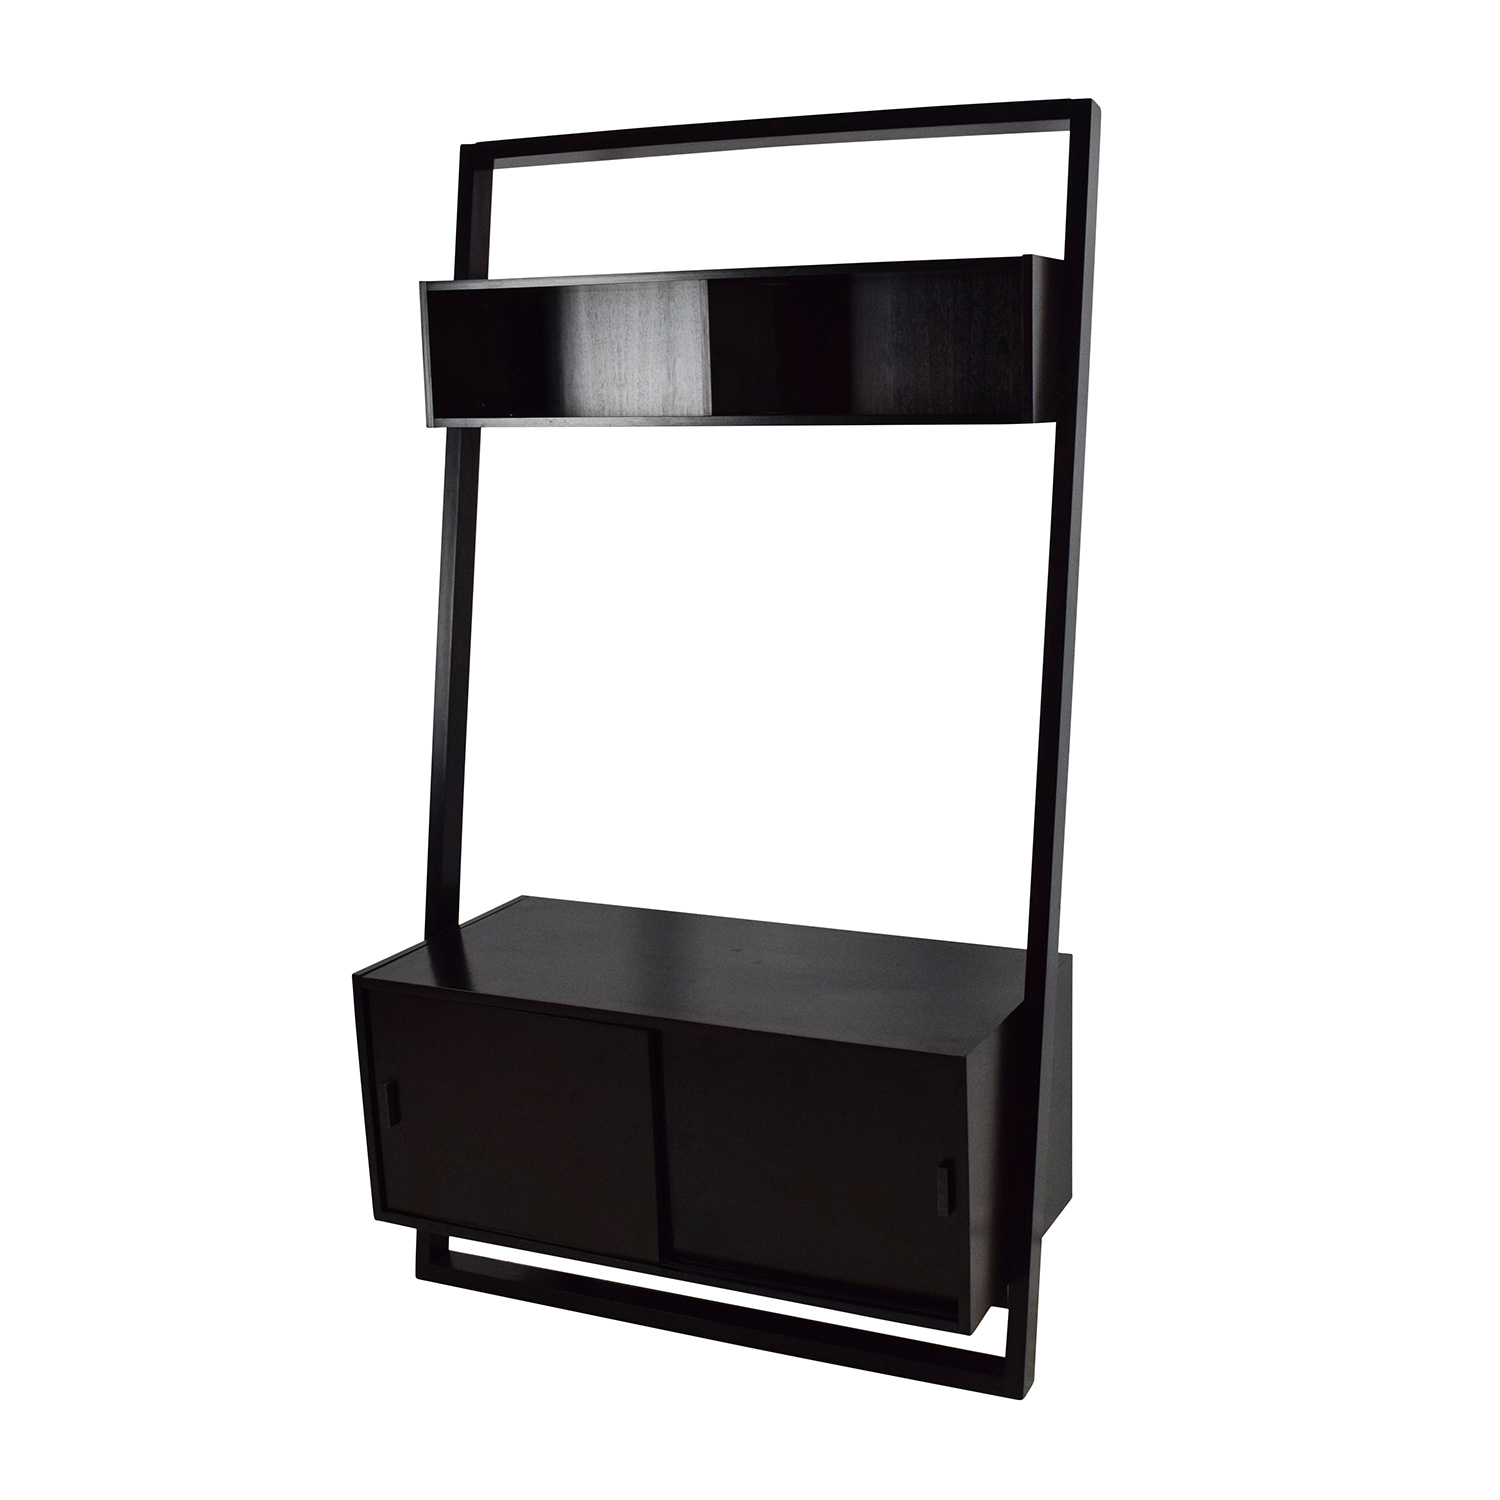 Crate Barrel Sloane Leaning Media Stand And